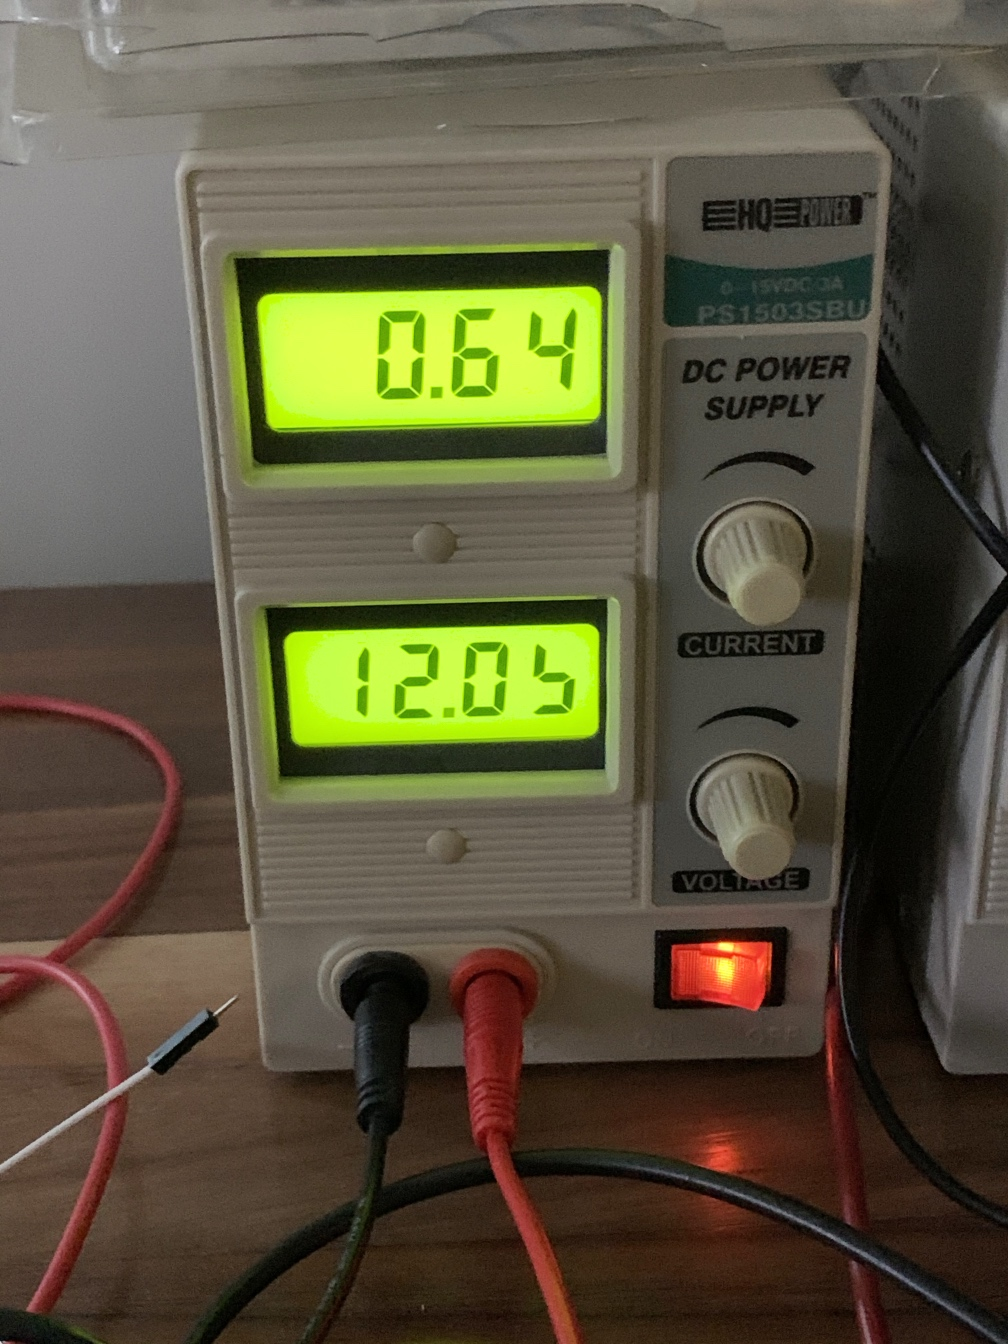 Bench supply showing surprisingly high idle power draw